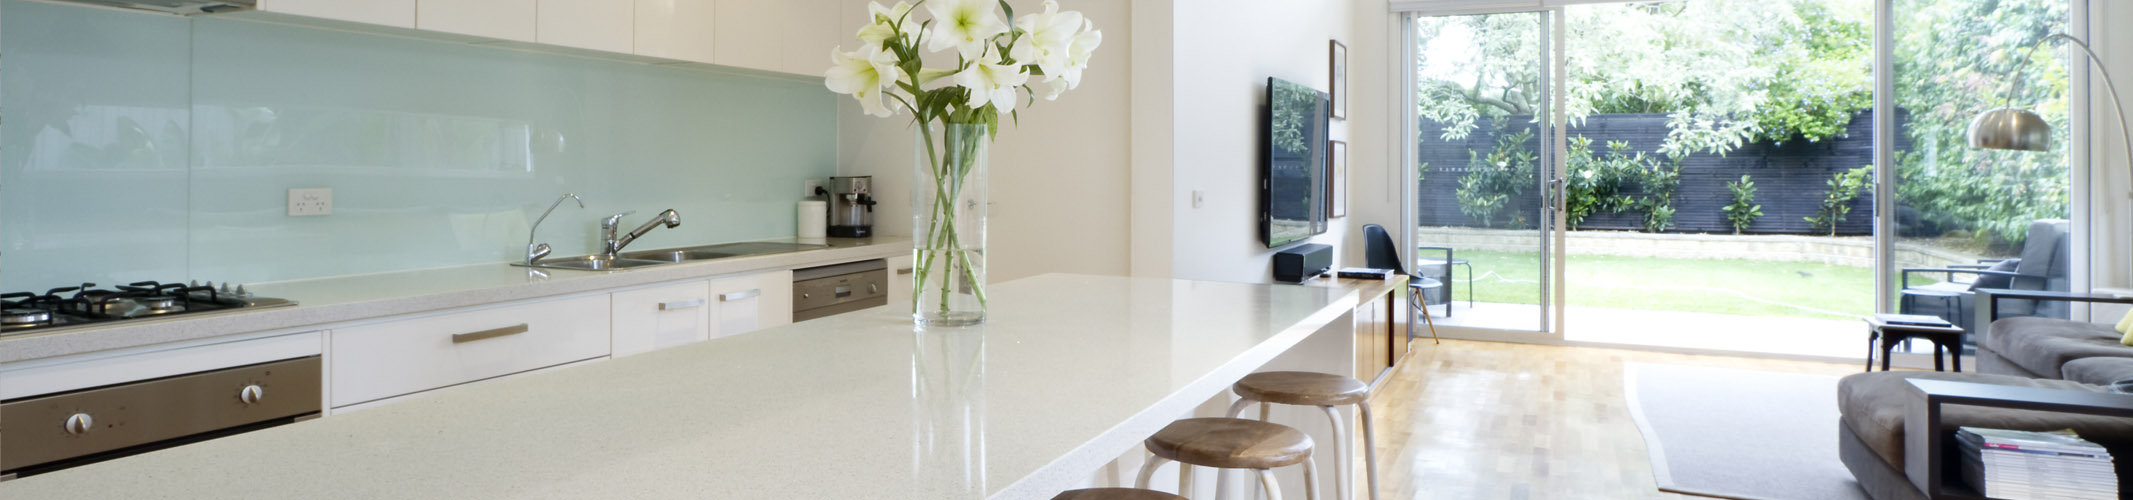 Kitchens and Bathrooms Hertfordshire